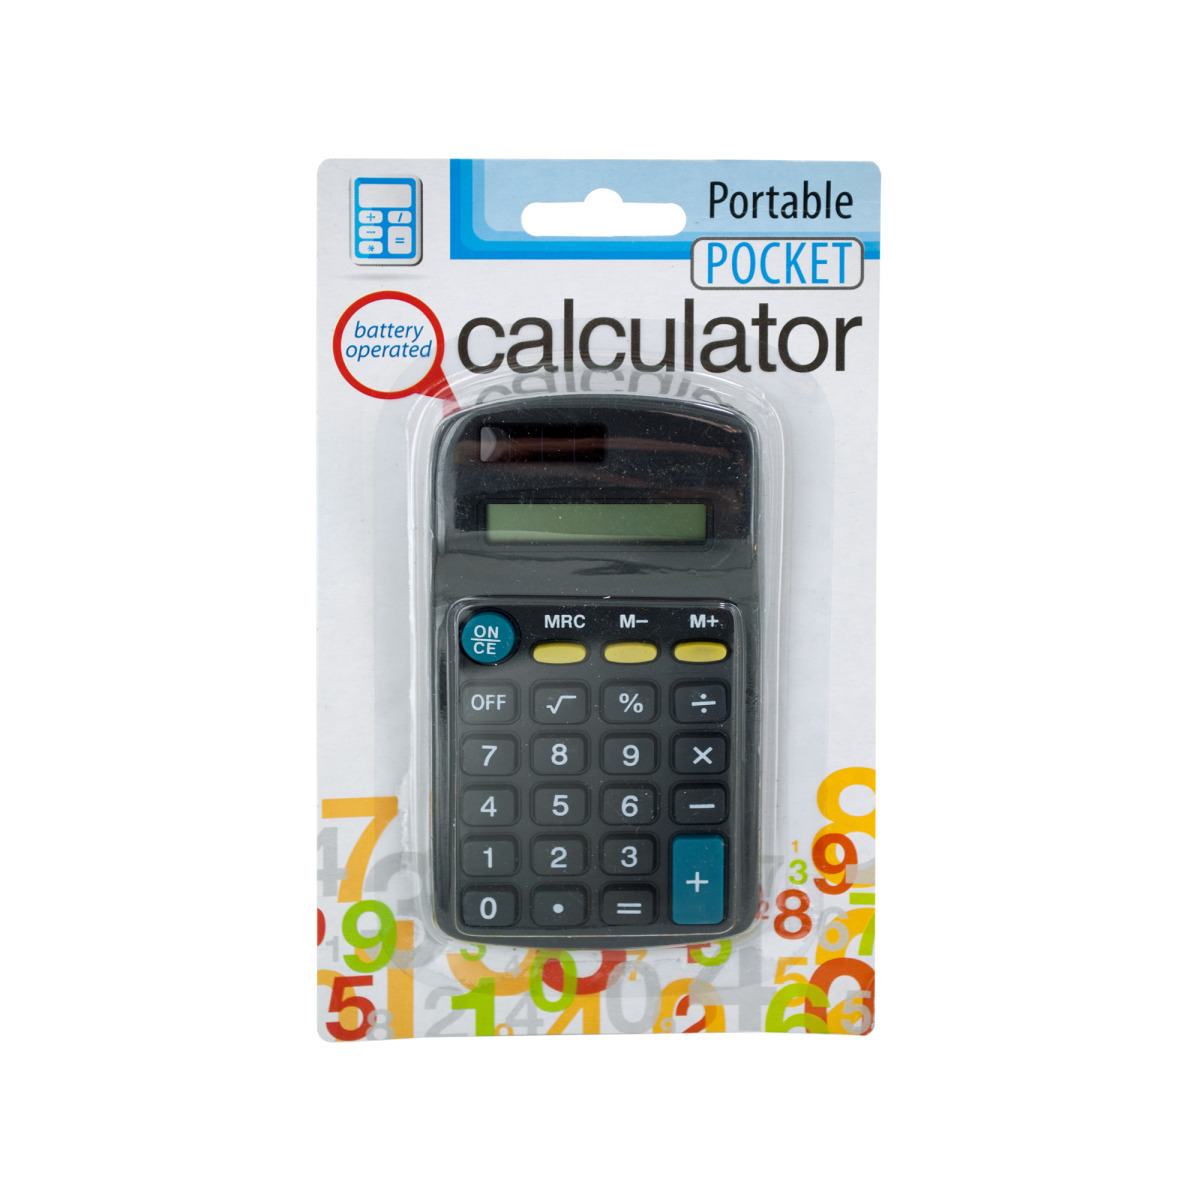 Wholesale Calculator Now Available At Central Items 1 40 Kalkulator Casio Portable Printer Hr 8 Tm Pocket Style 695l 1765898